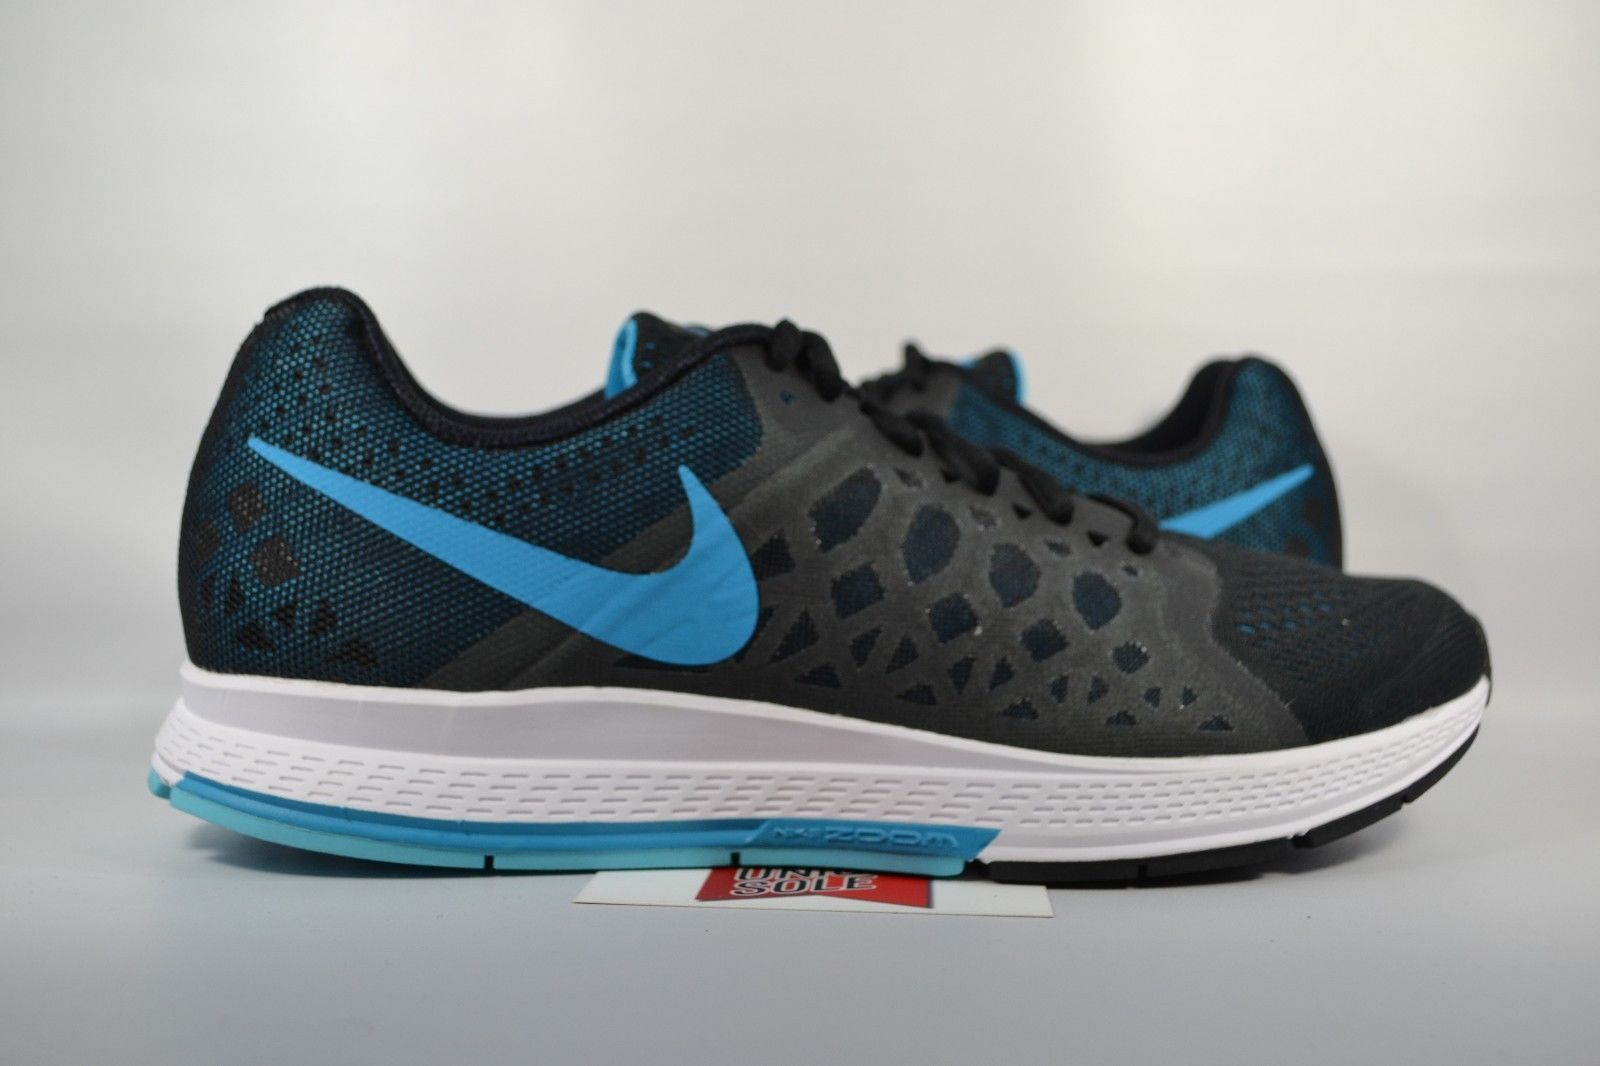 quality design 85c70 b0773 ... where to buy nueva negro nike air zoom pegasus 31 negro nueva laguna  azul 652925 004